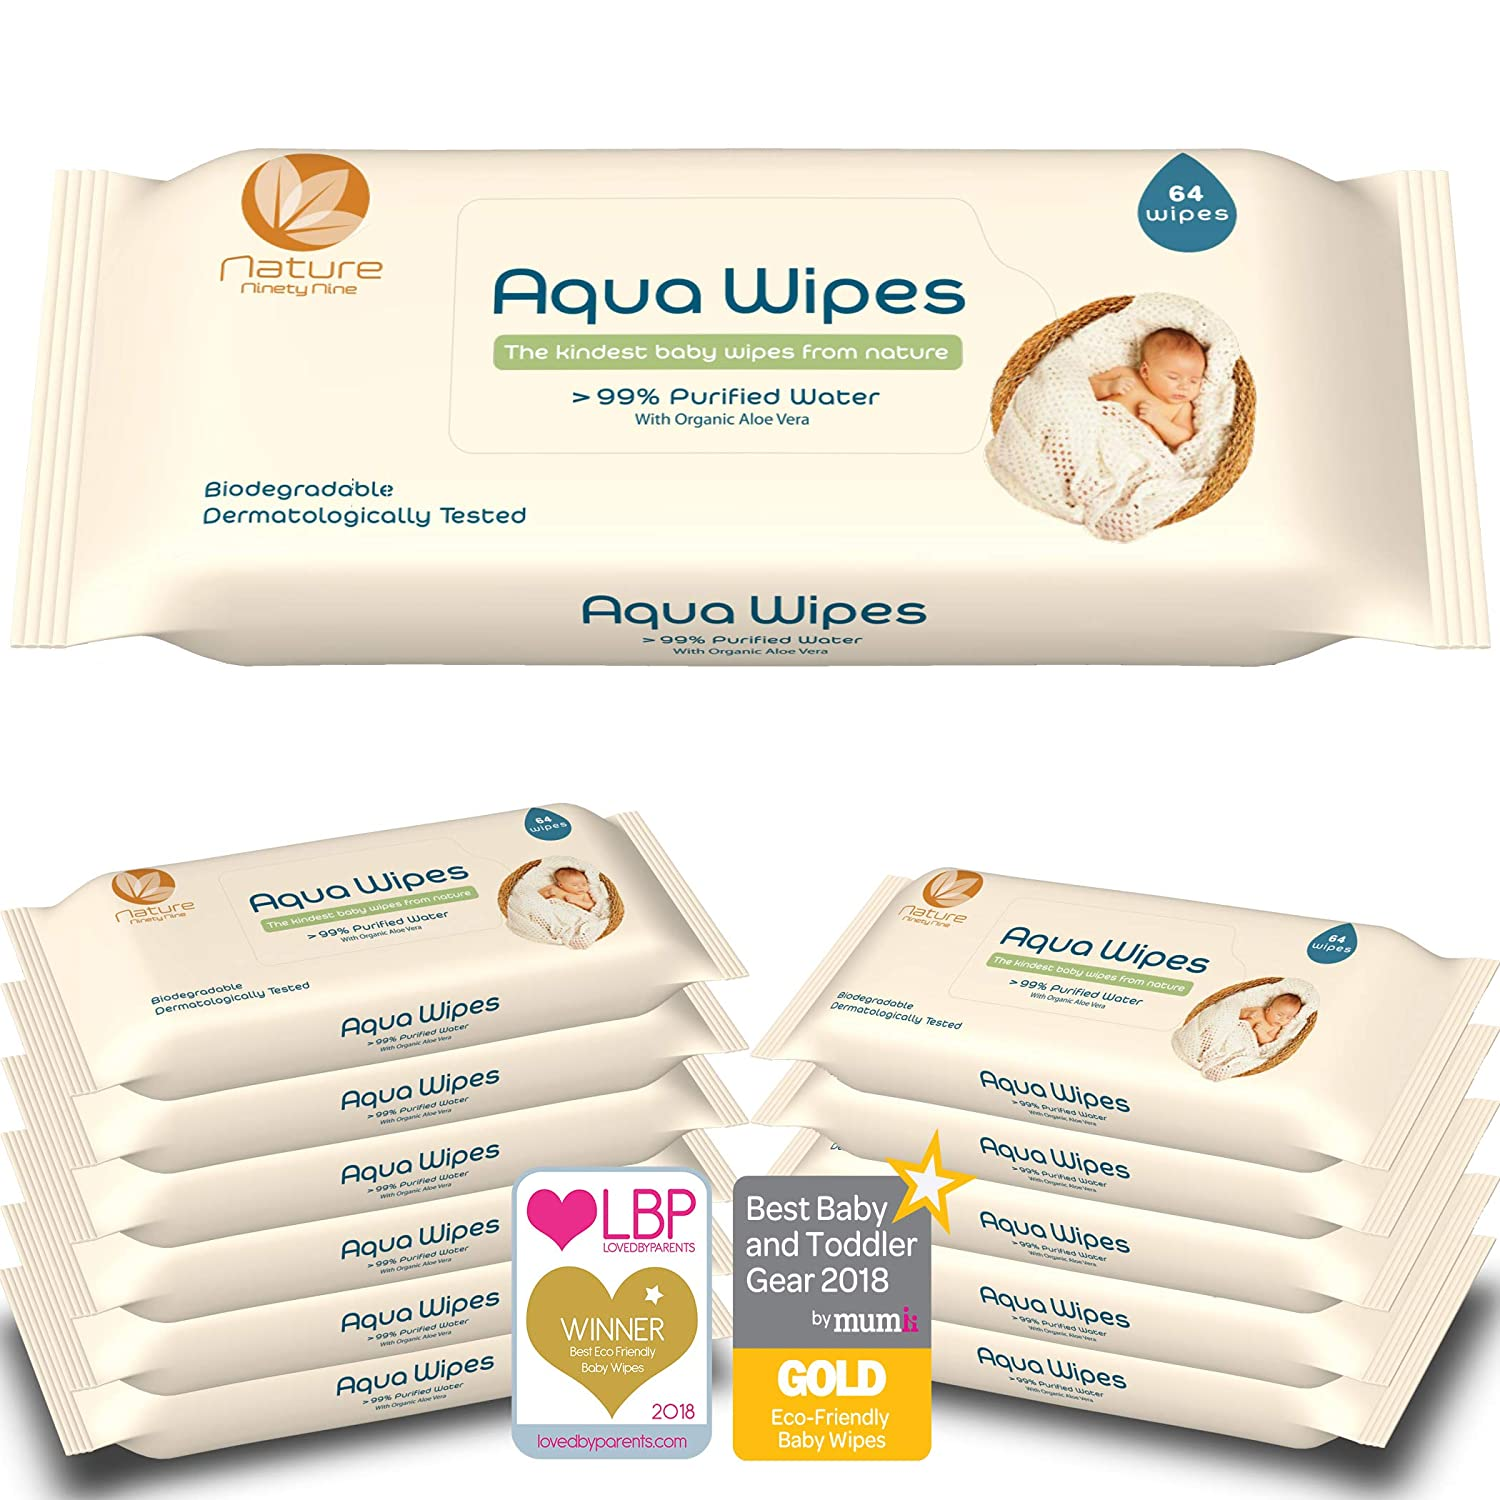 Aqua Wipes Baby Wipes, (Carton of 12 x 64 wipe packs (768 Wipes)), Newborn wipes, AQW64F, Vegan, PLASTIC FREE, Paraben Free and Biodegradable wipes, 99.6% Purified Water, NHS APPROVED Clinicept Healthcare AQW64F12P